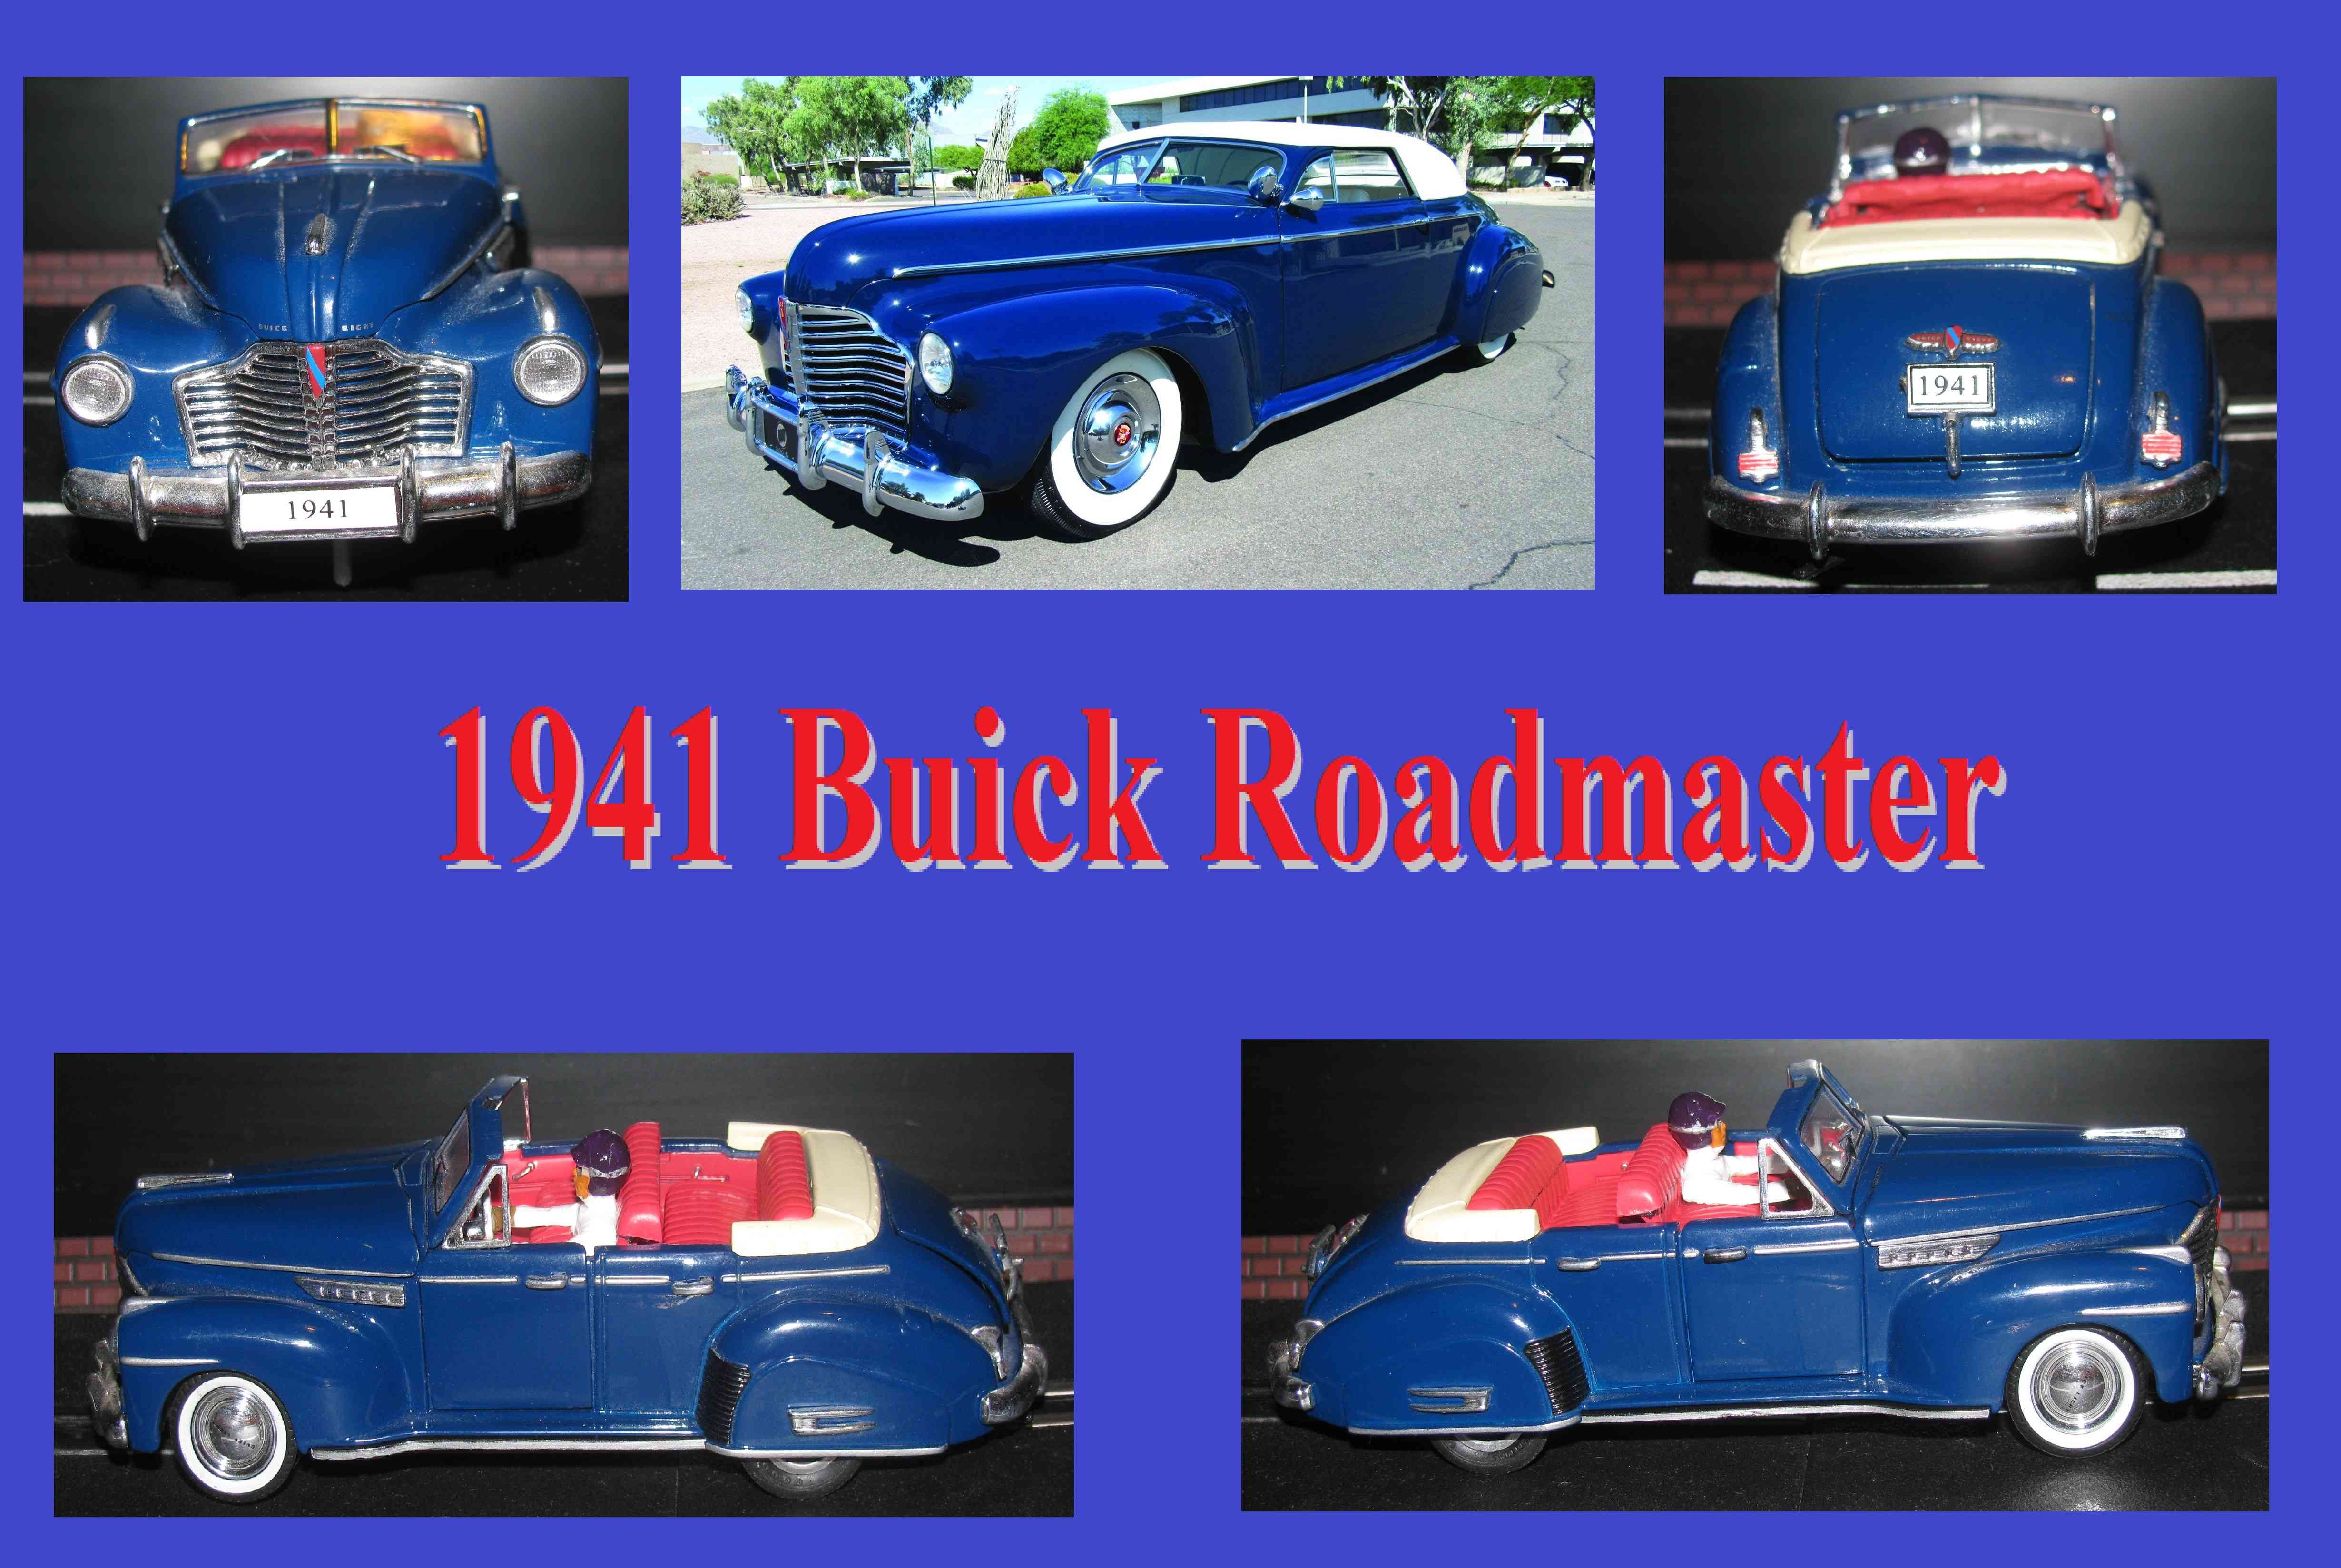 * Winter Super Sale * 1941 Buick Roadmaster Slot Car 1:32 Scale Heavy Hitter with loads of power